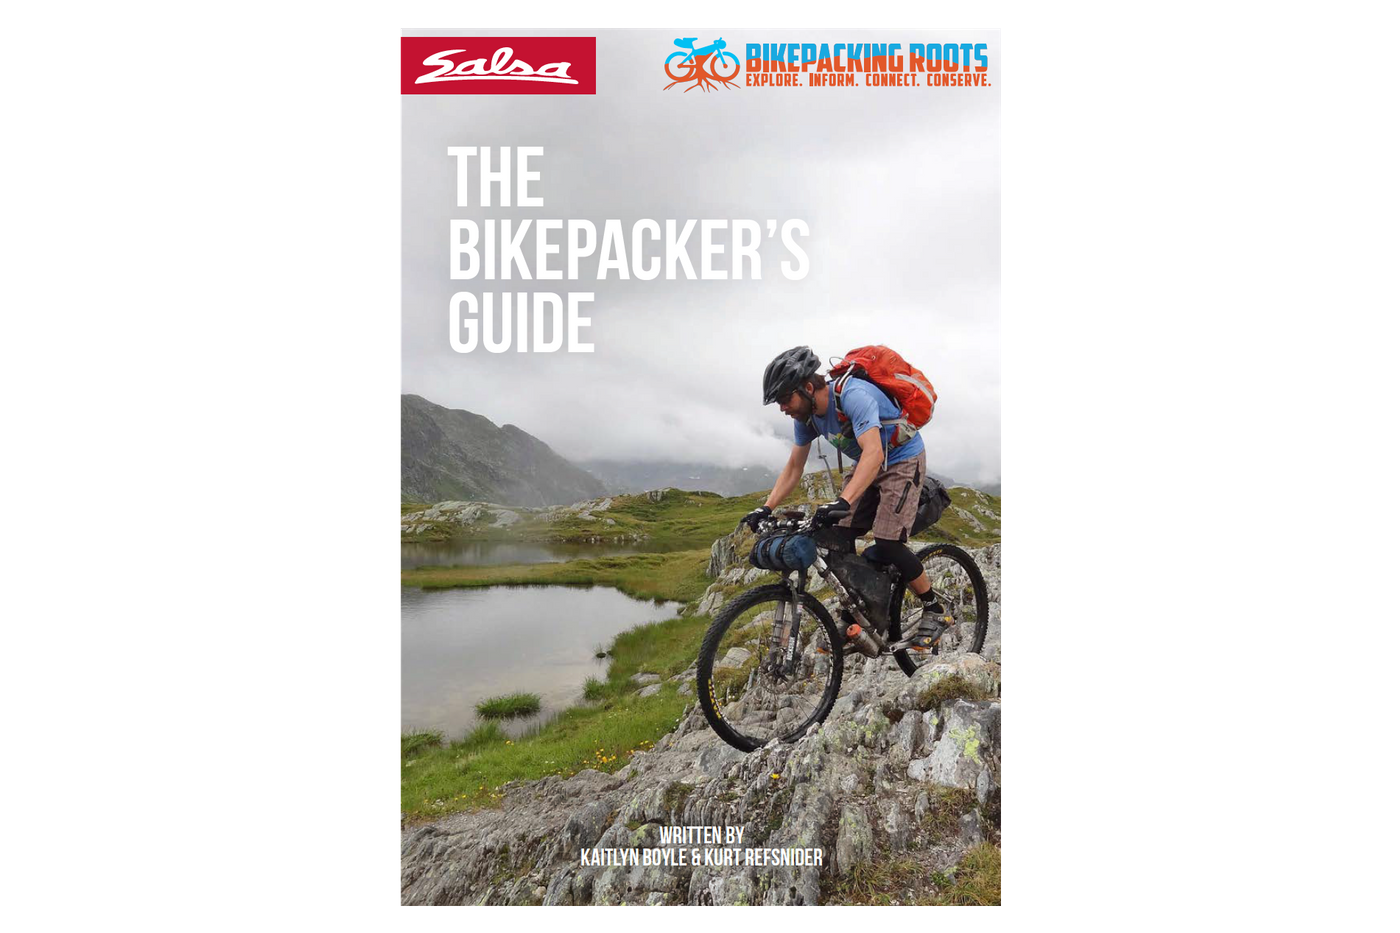 Bikepacking Roots Announce the Beginner's Guide to Bikepacking is Available for Digital Download!